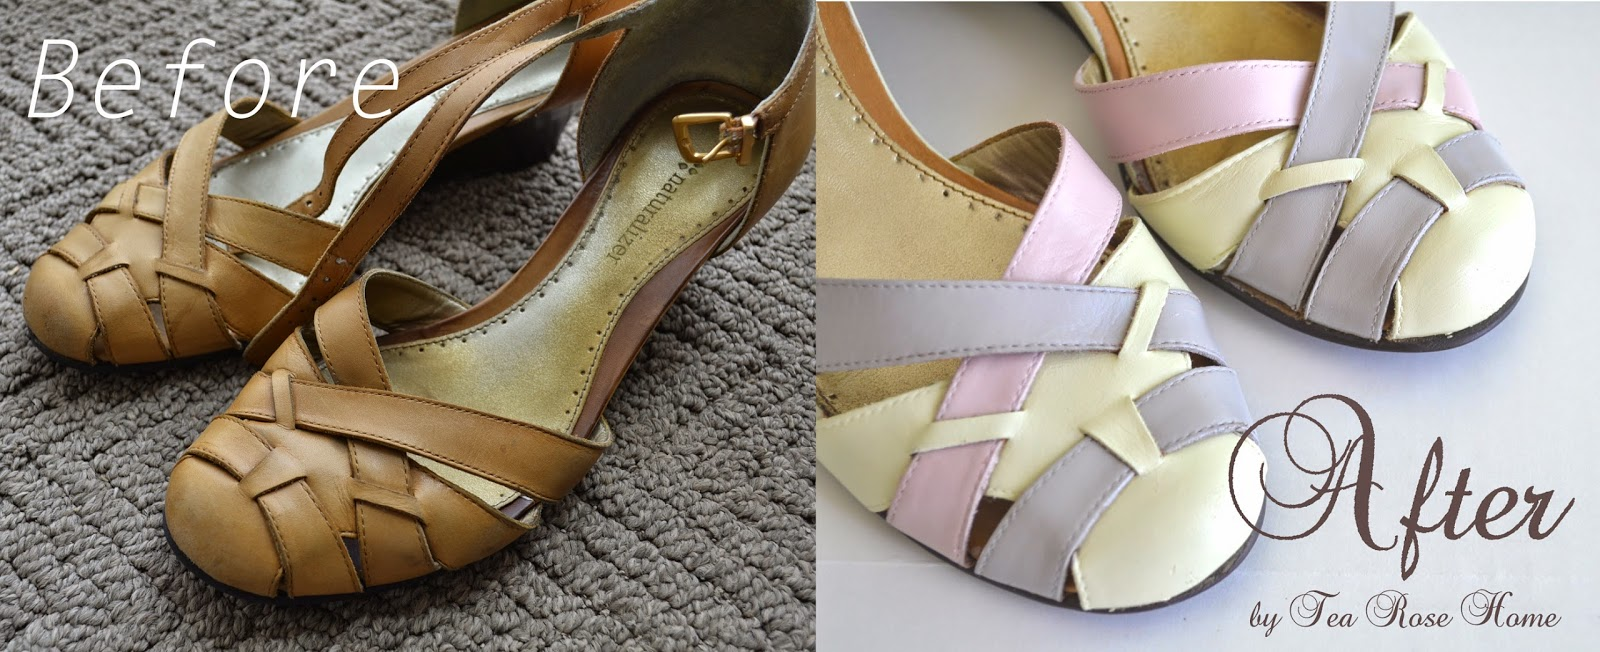 tea home shoe makeover how to paint leather shoes